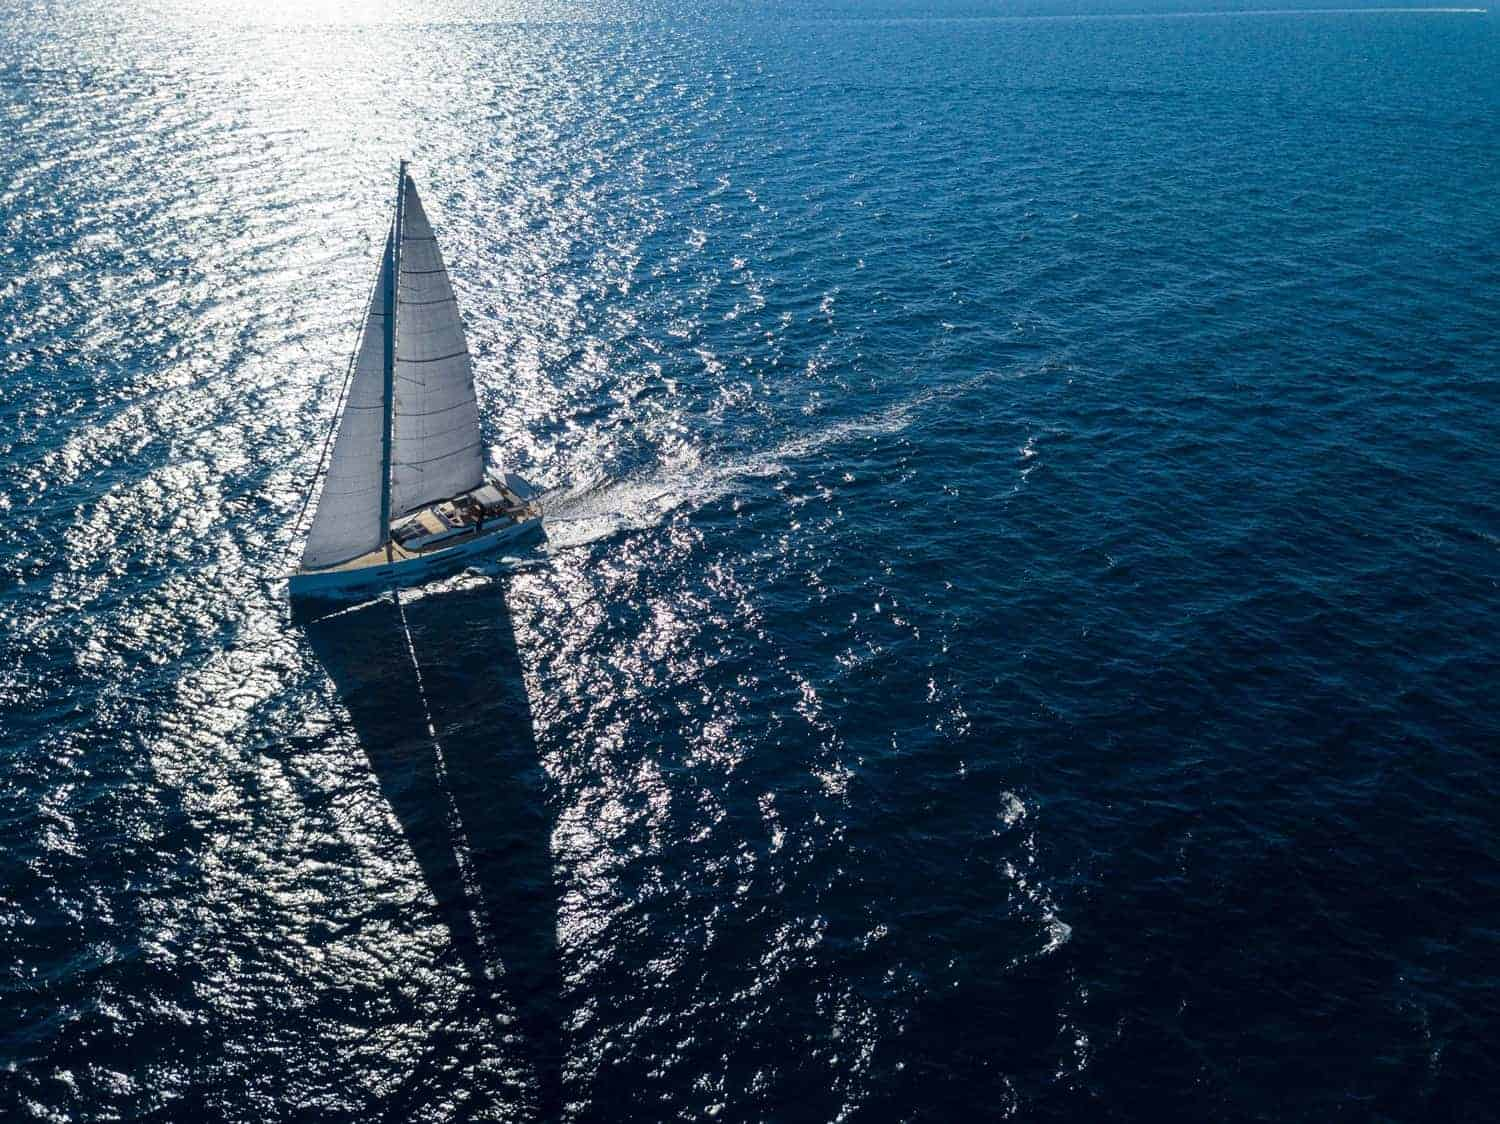 The Dufour Exclusive 63 in action, gliding through the blue calm ocean